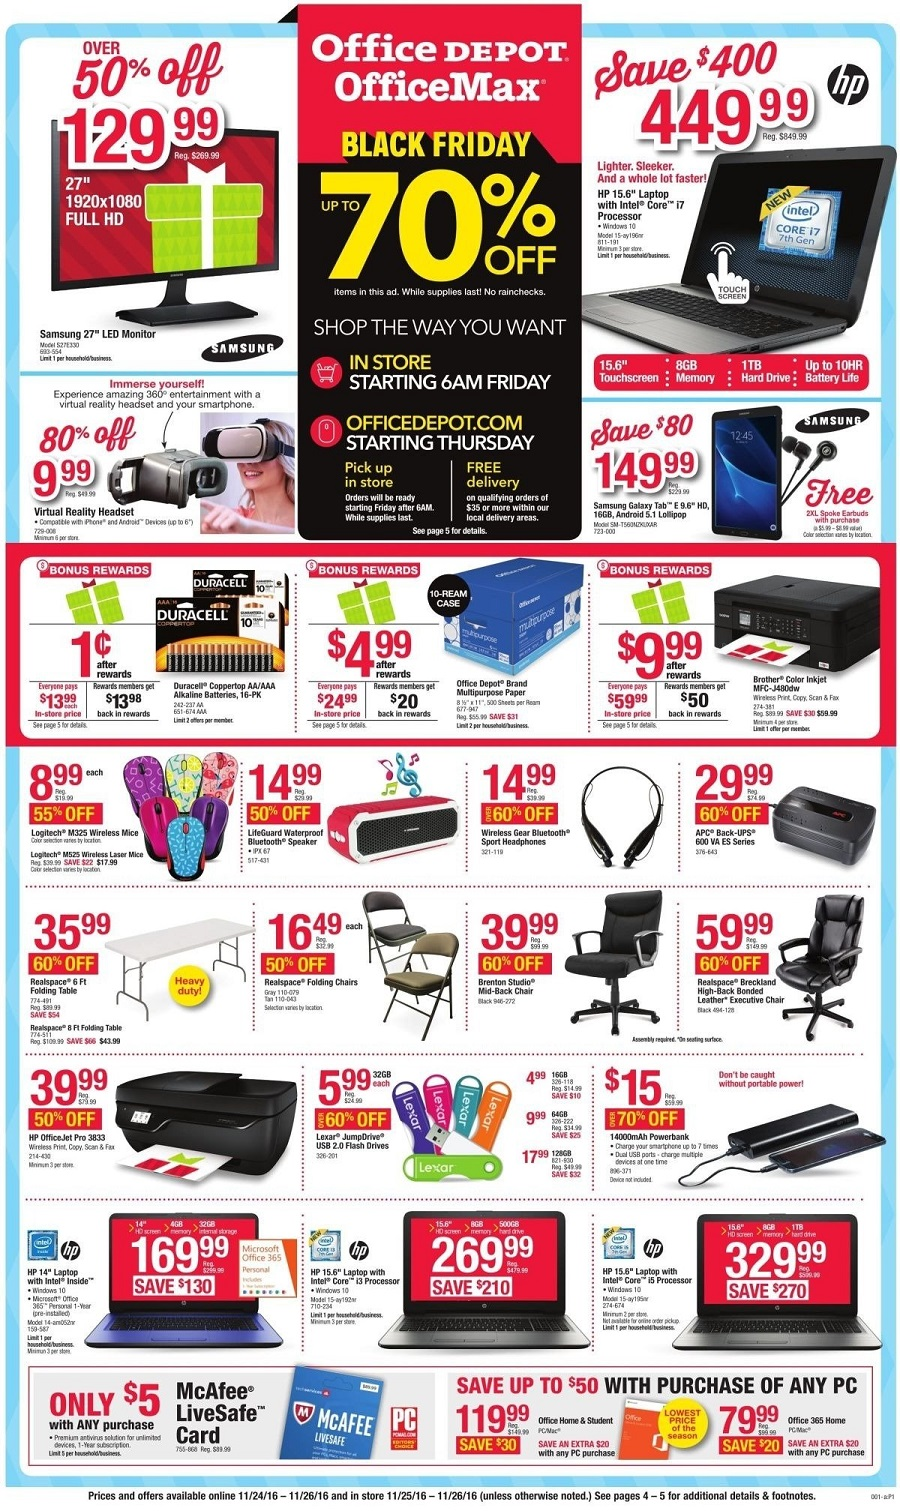 Office Depot 2016 Black Friday Ad Page 1